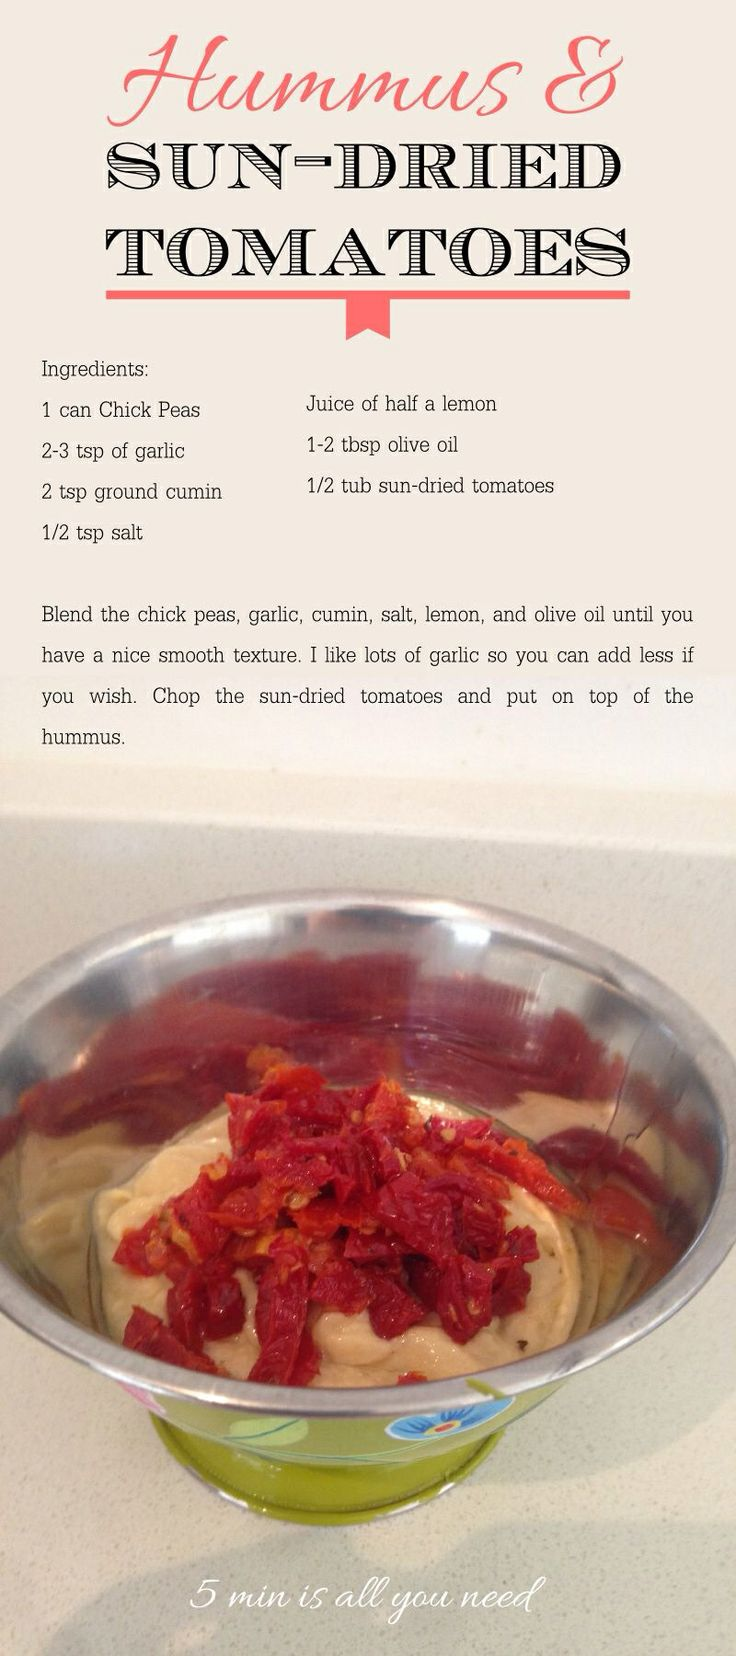 Hummus and sun dried tomatoes | Dinner Inspiration | Pinterest